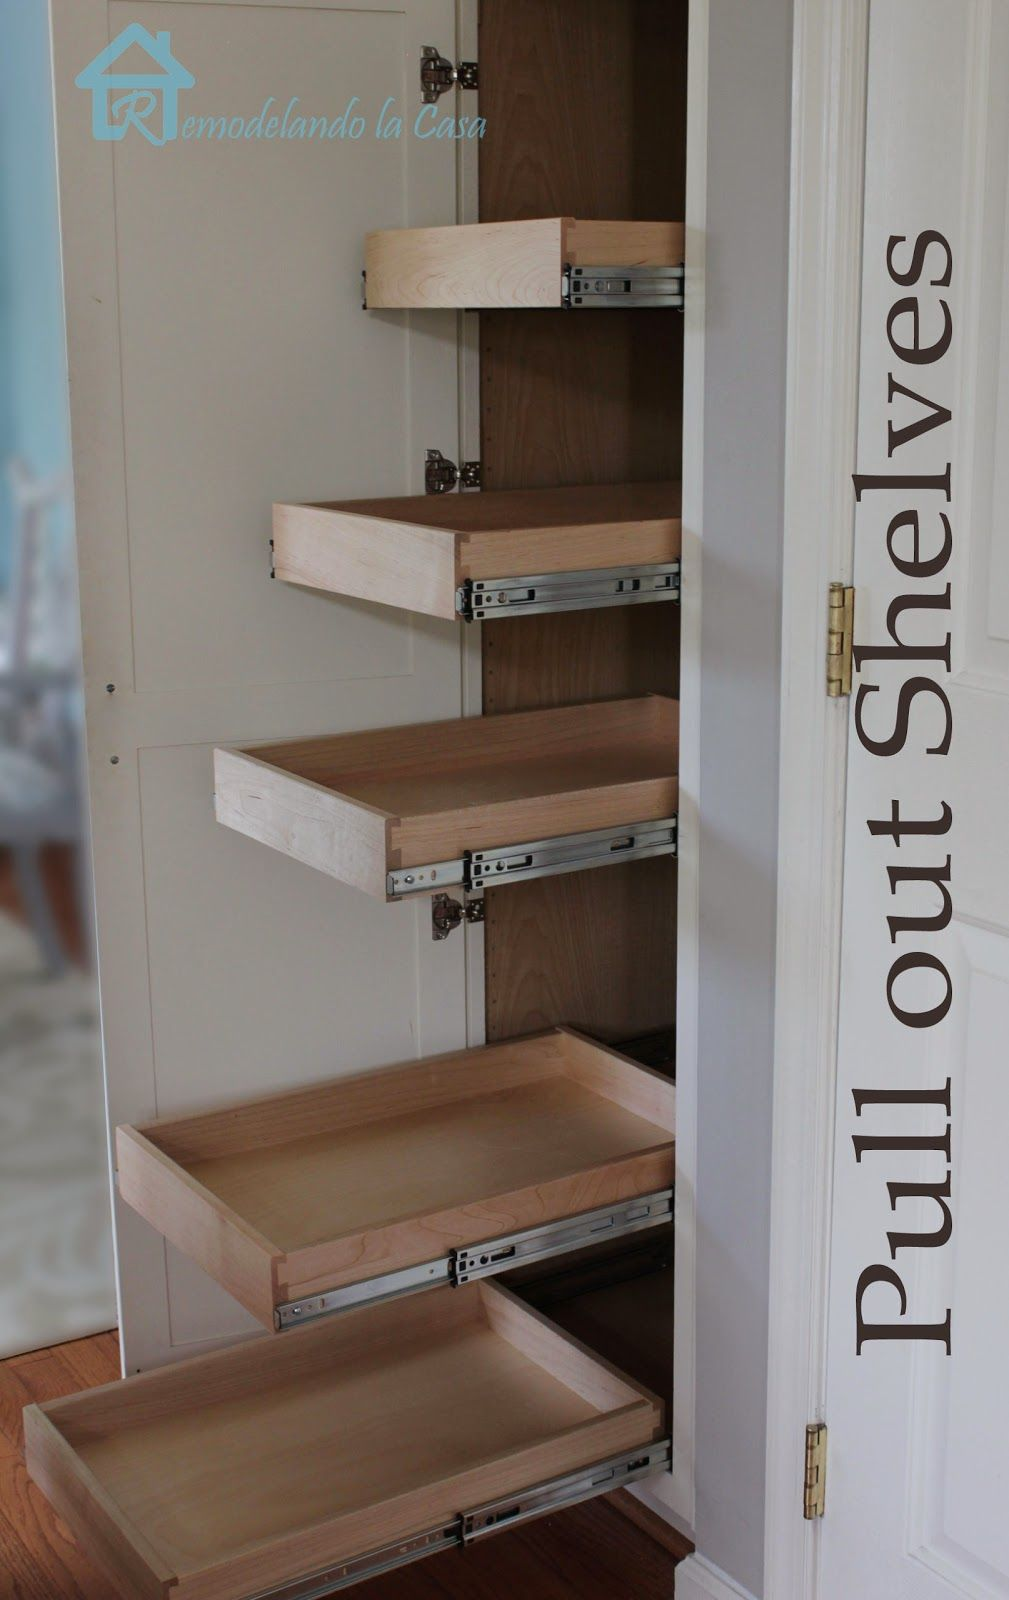 Kitchen Organization - Pull Out Shelves In Pantry In 2019